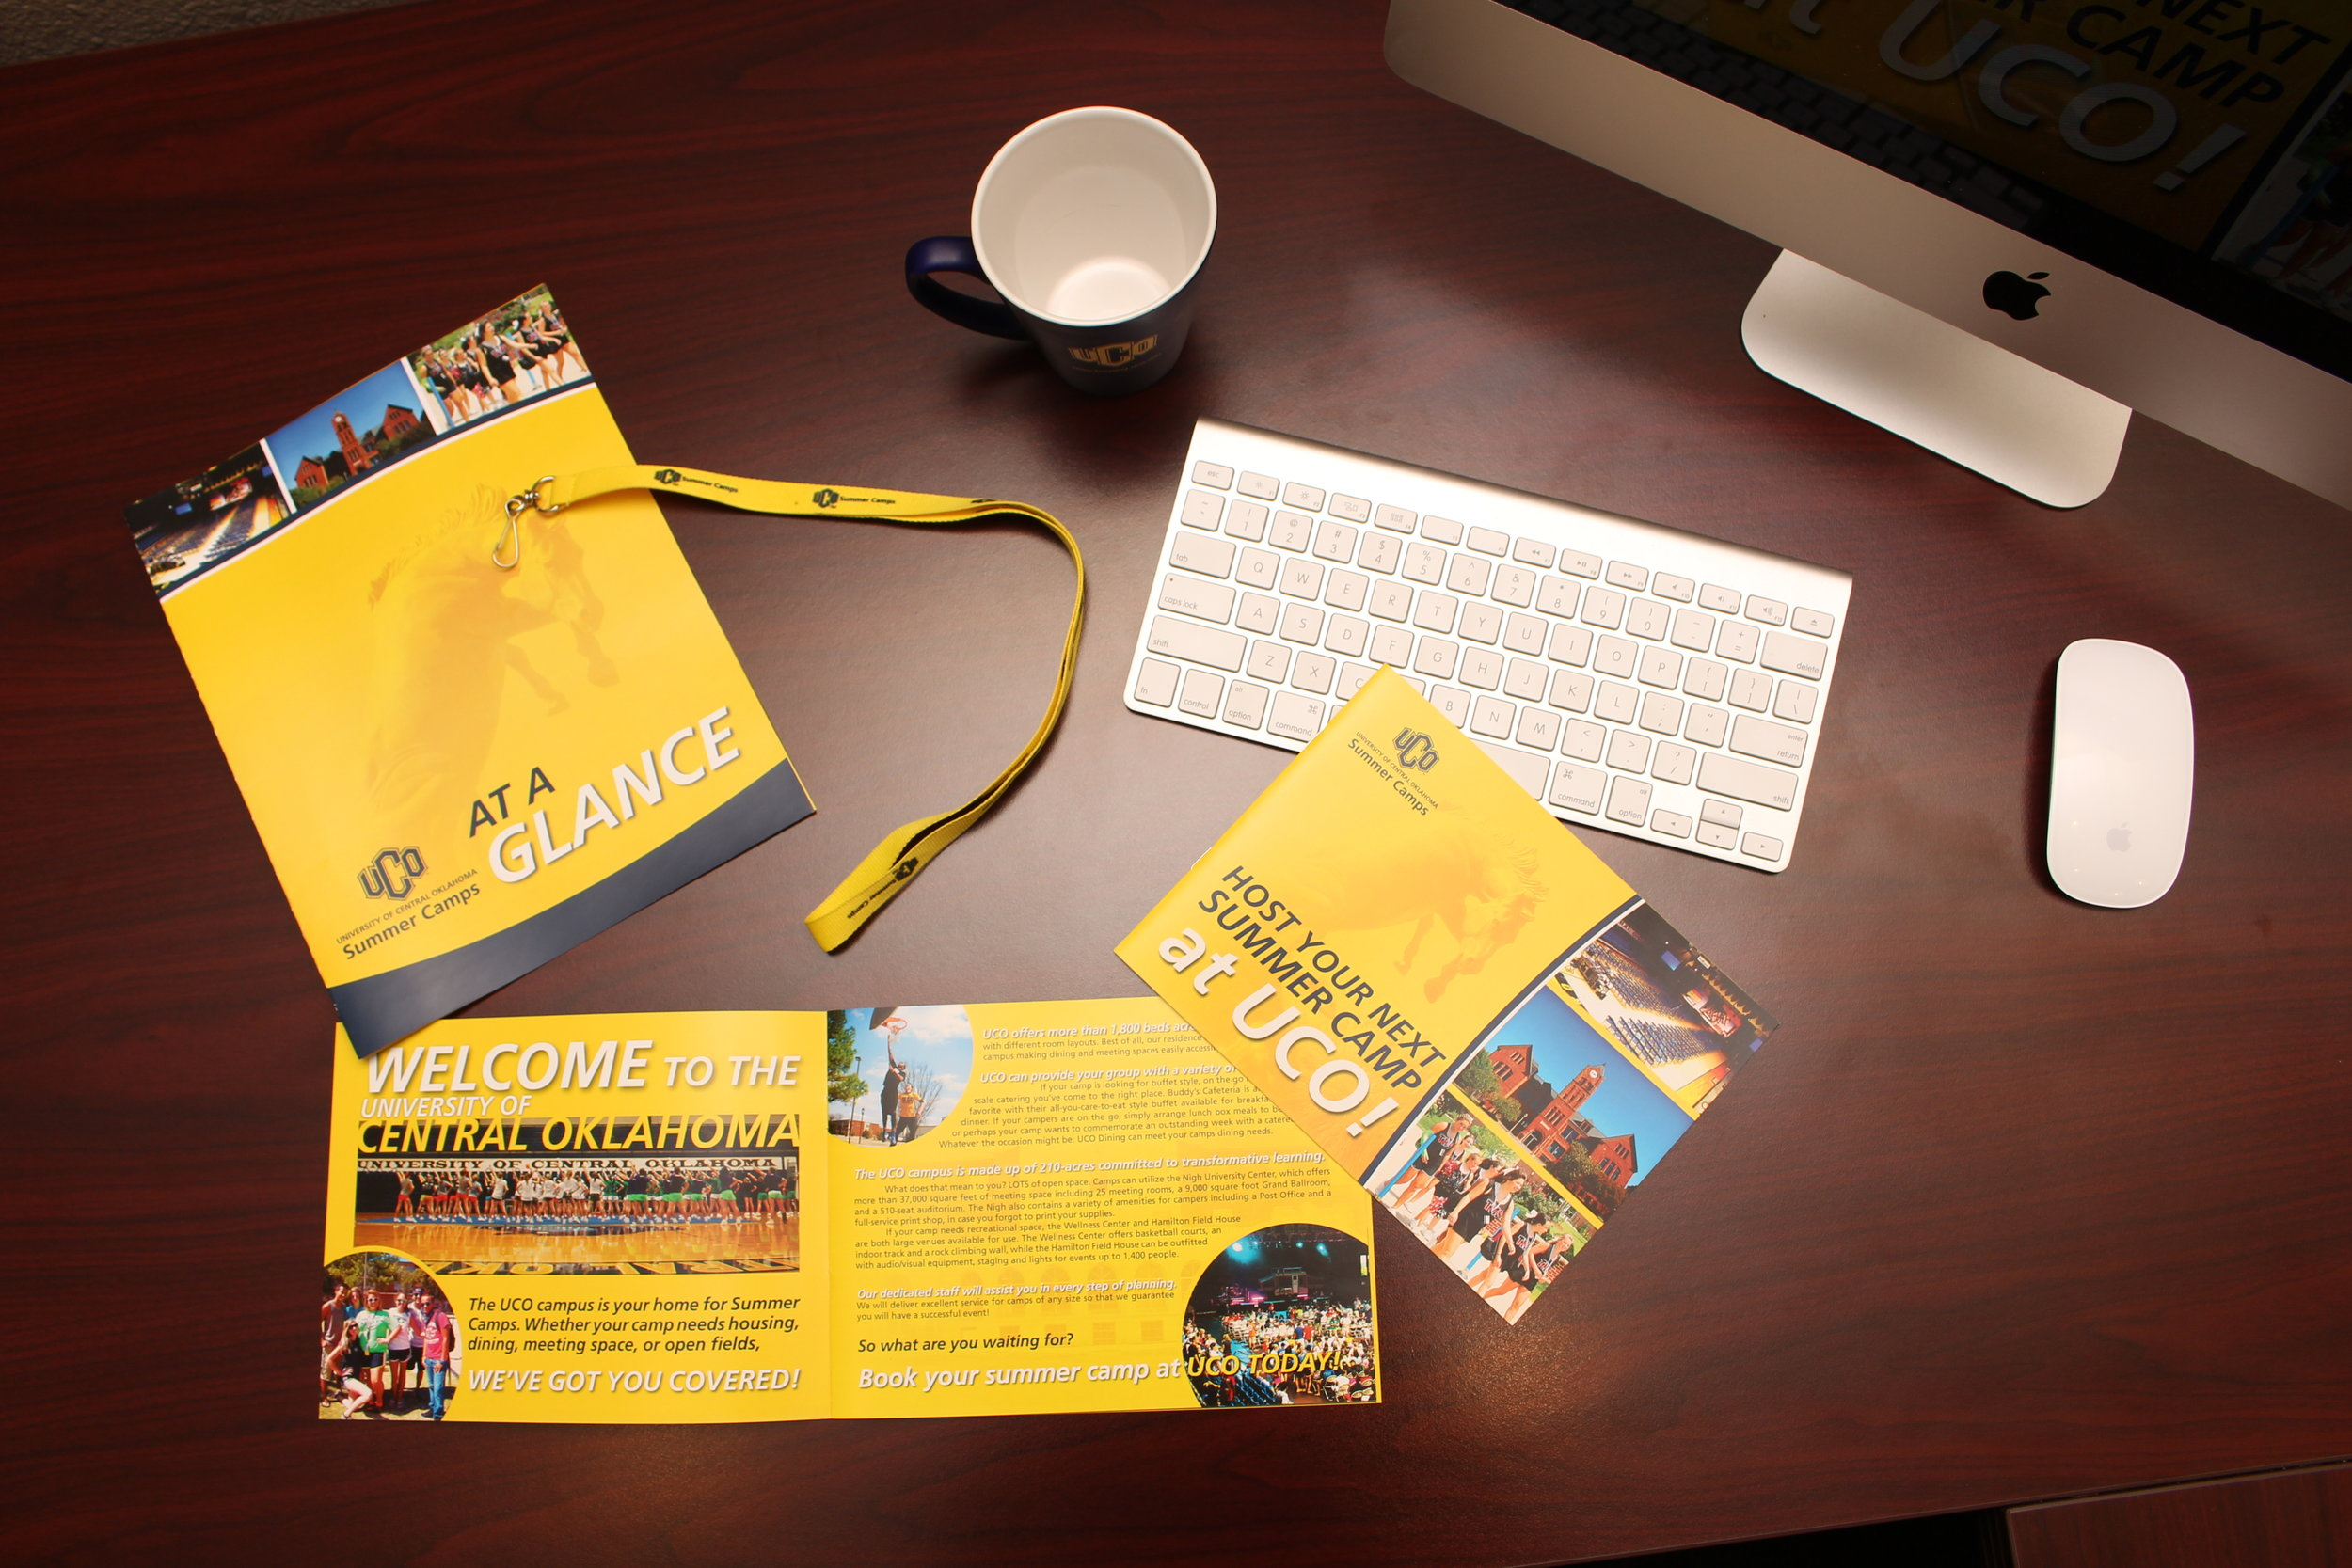 University Summer Camp Promos - Various promotional materials to encourage camps and conferences to stay on campus at the University of Central Oklahoma